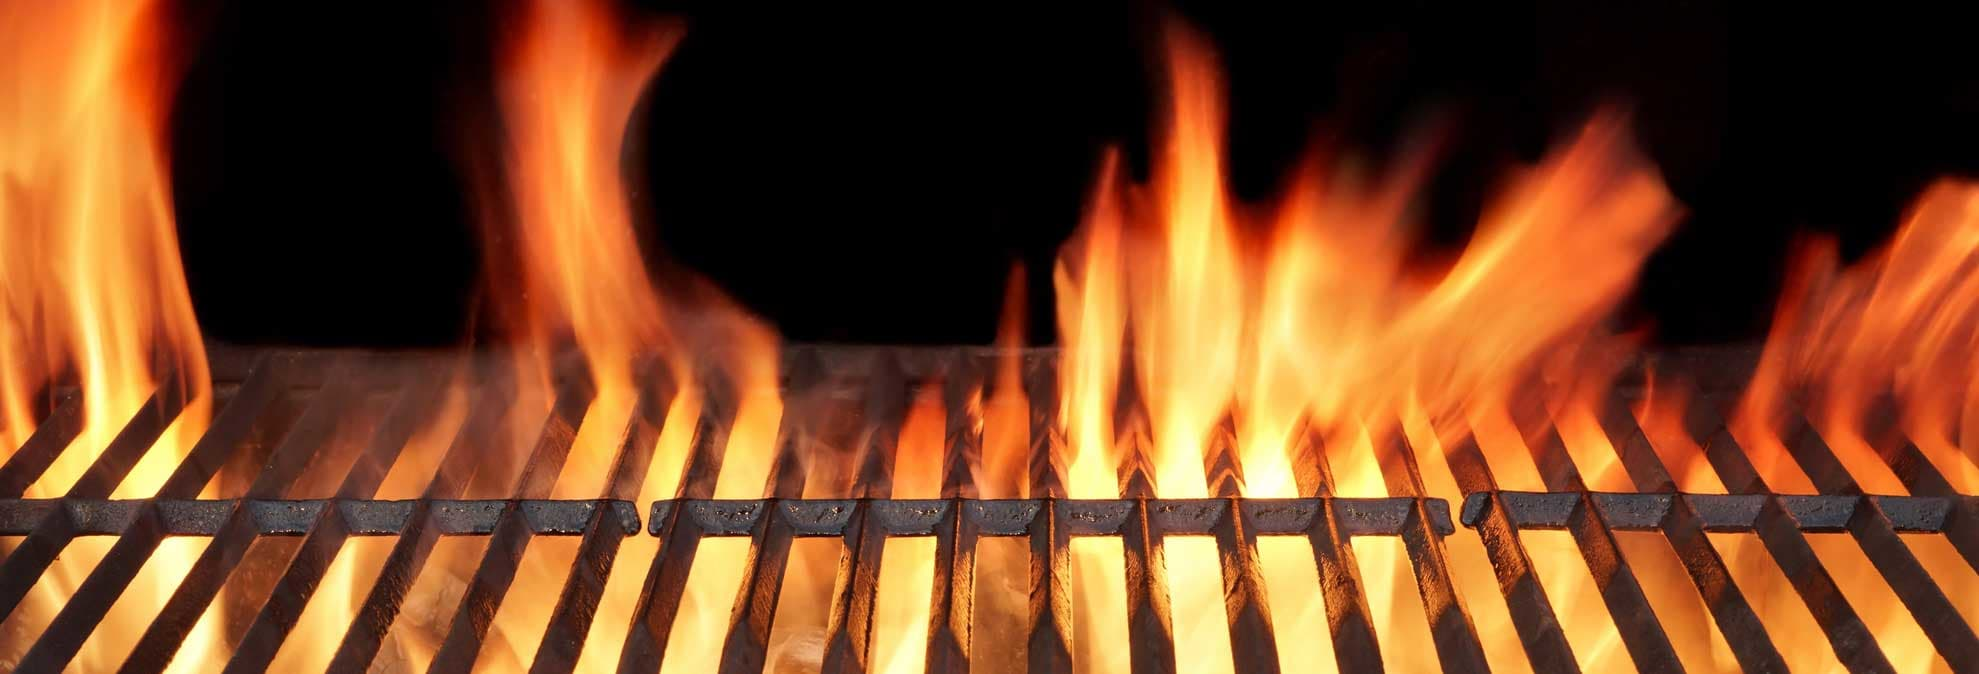 Is Your Grill Hot Enough Consumer Reports